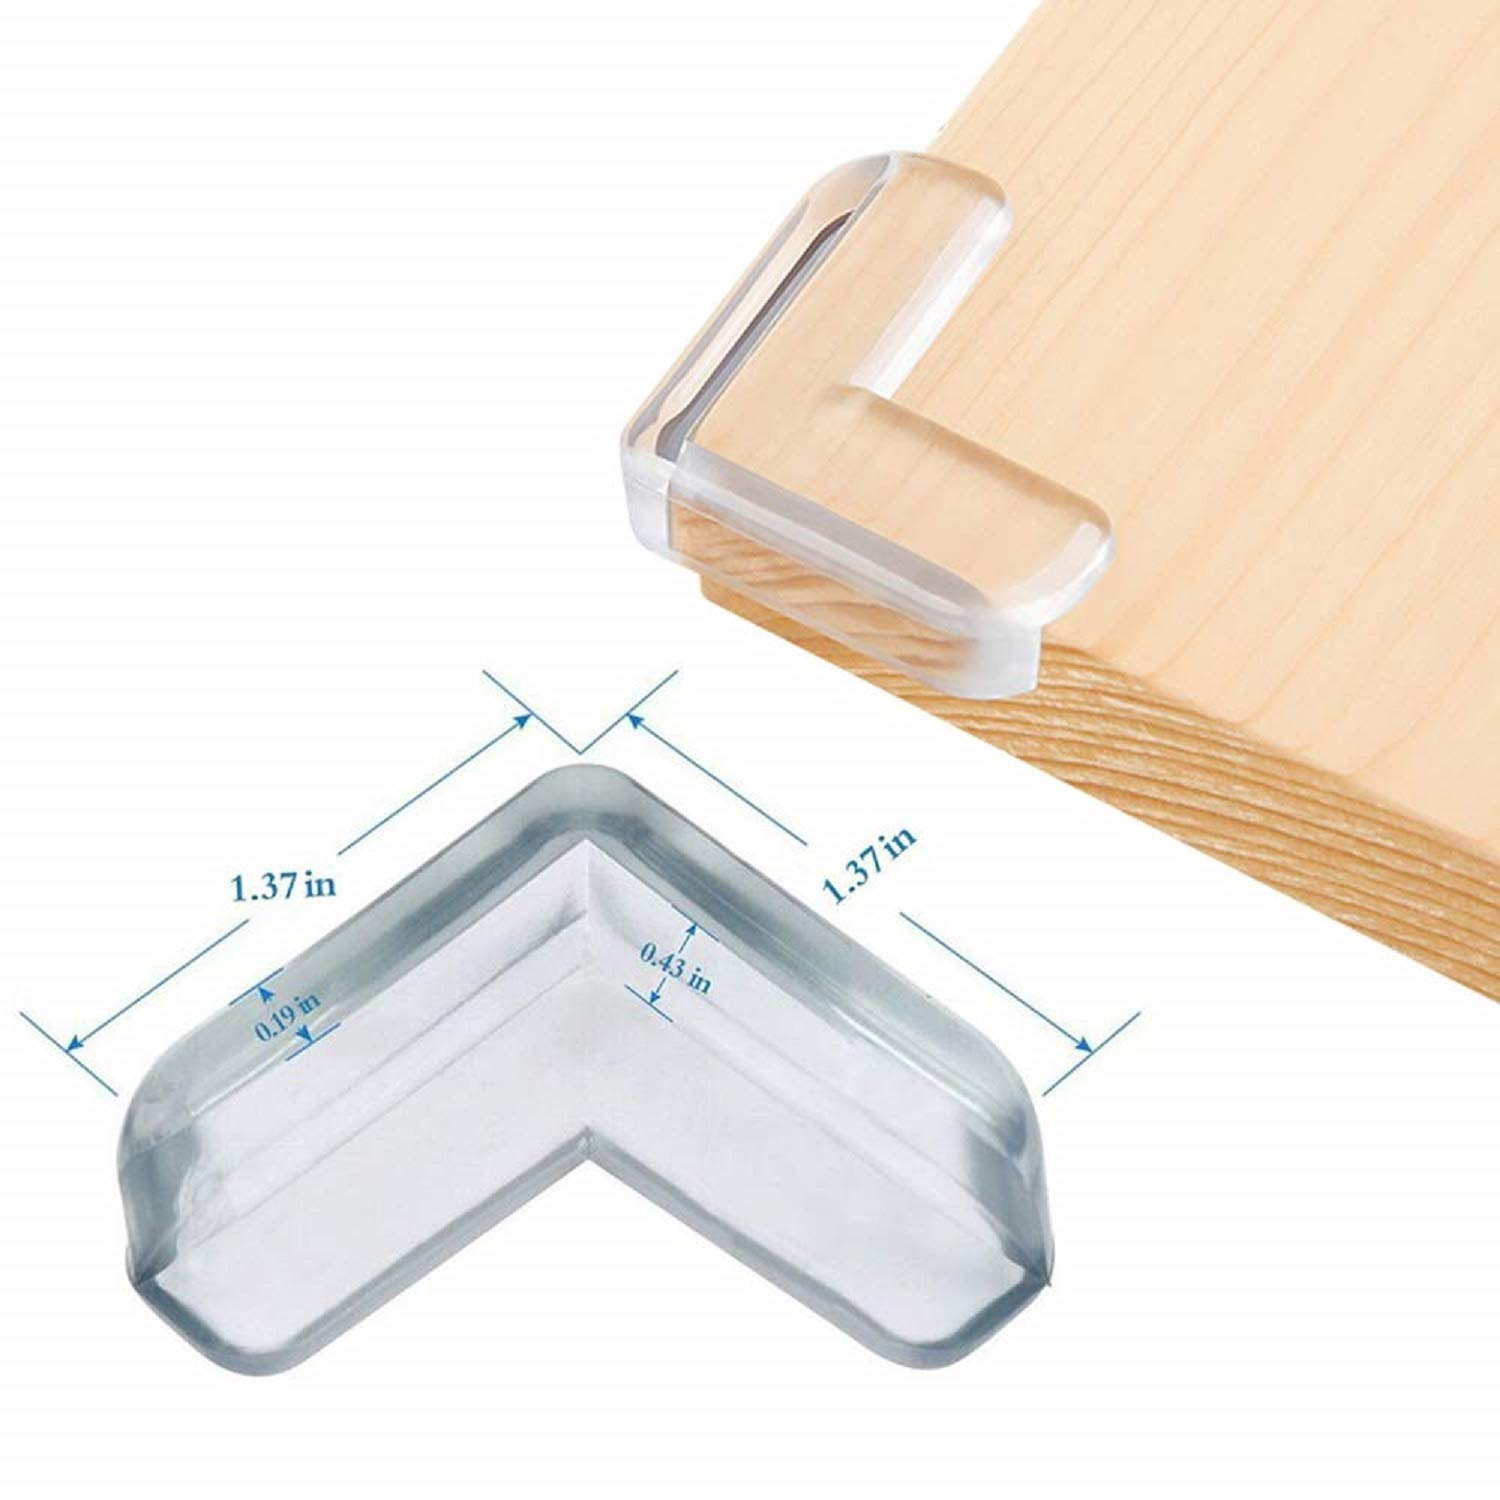 Smile Face JIOUDI Corner Protectors for Kids,Premium Quality Clear Soft and Large Table Edge Bumper Guards for Child and Baby Proofing Installs in Seconds with Extra Strong Adhesive